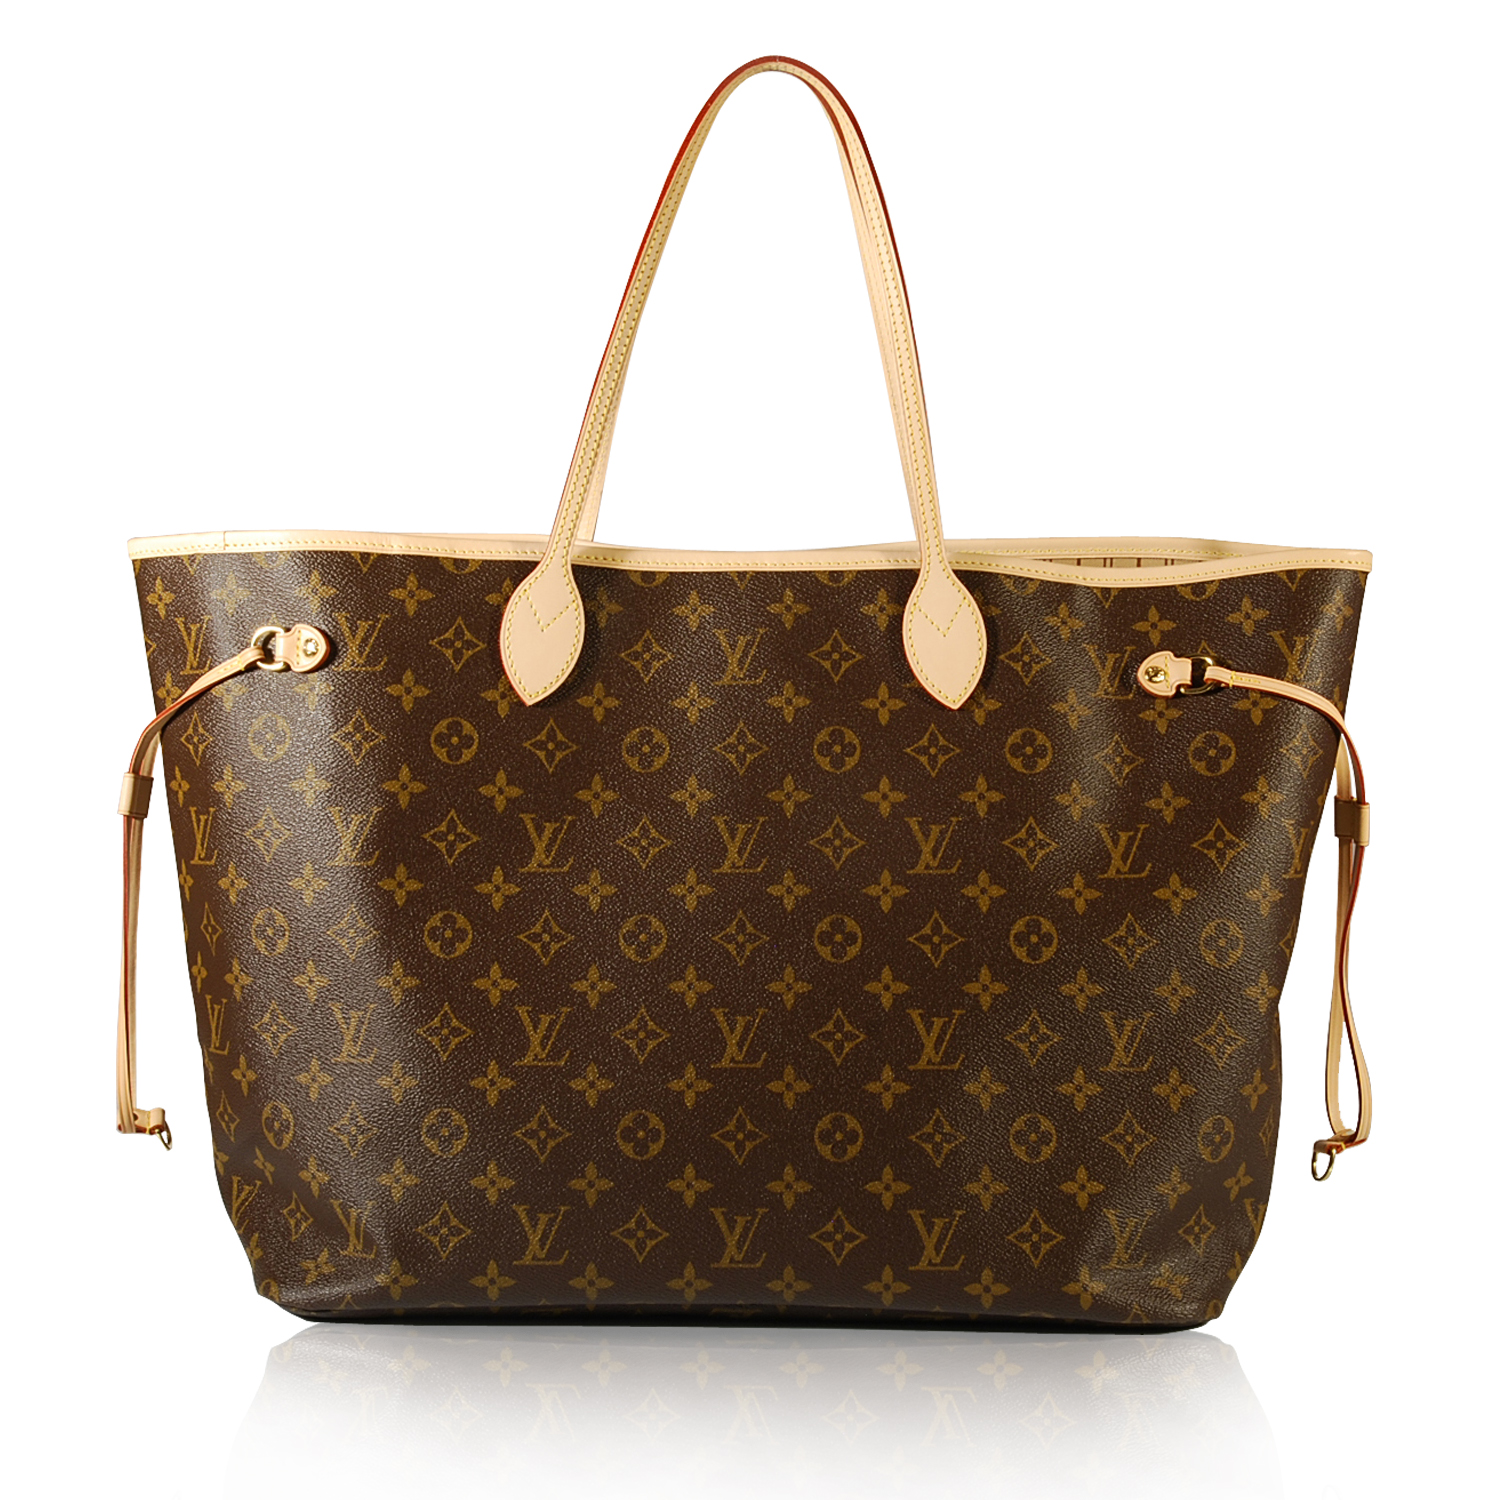 LOUIS-VUITTON-neverfull-140-large